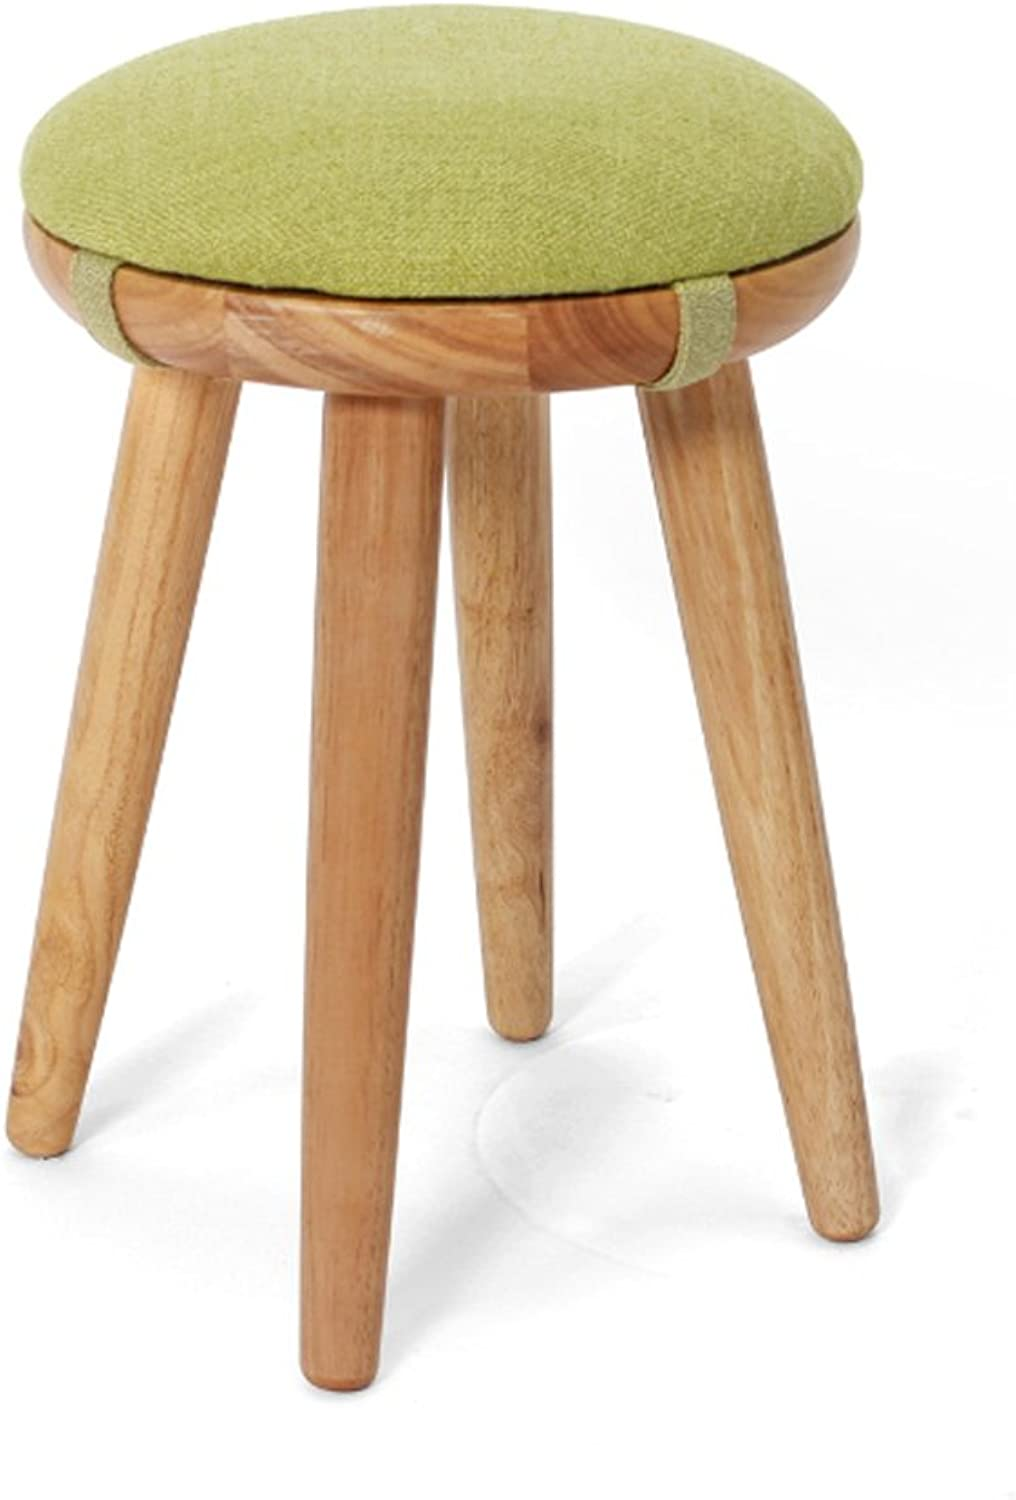 Japanese Style Rubber Wood Stool, Small Round Bench Stool for Dressing Table Home Coffee Table Stool Chair (color   B-31  40CM)